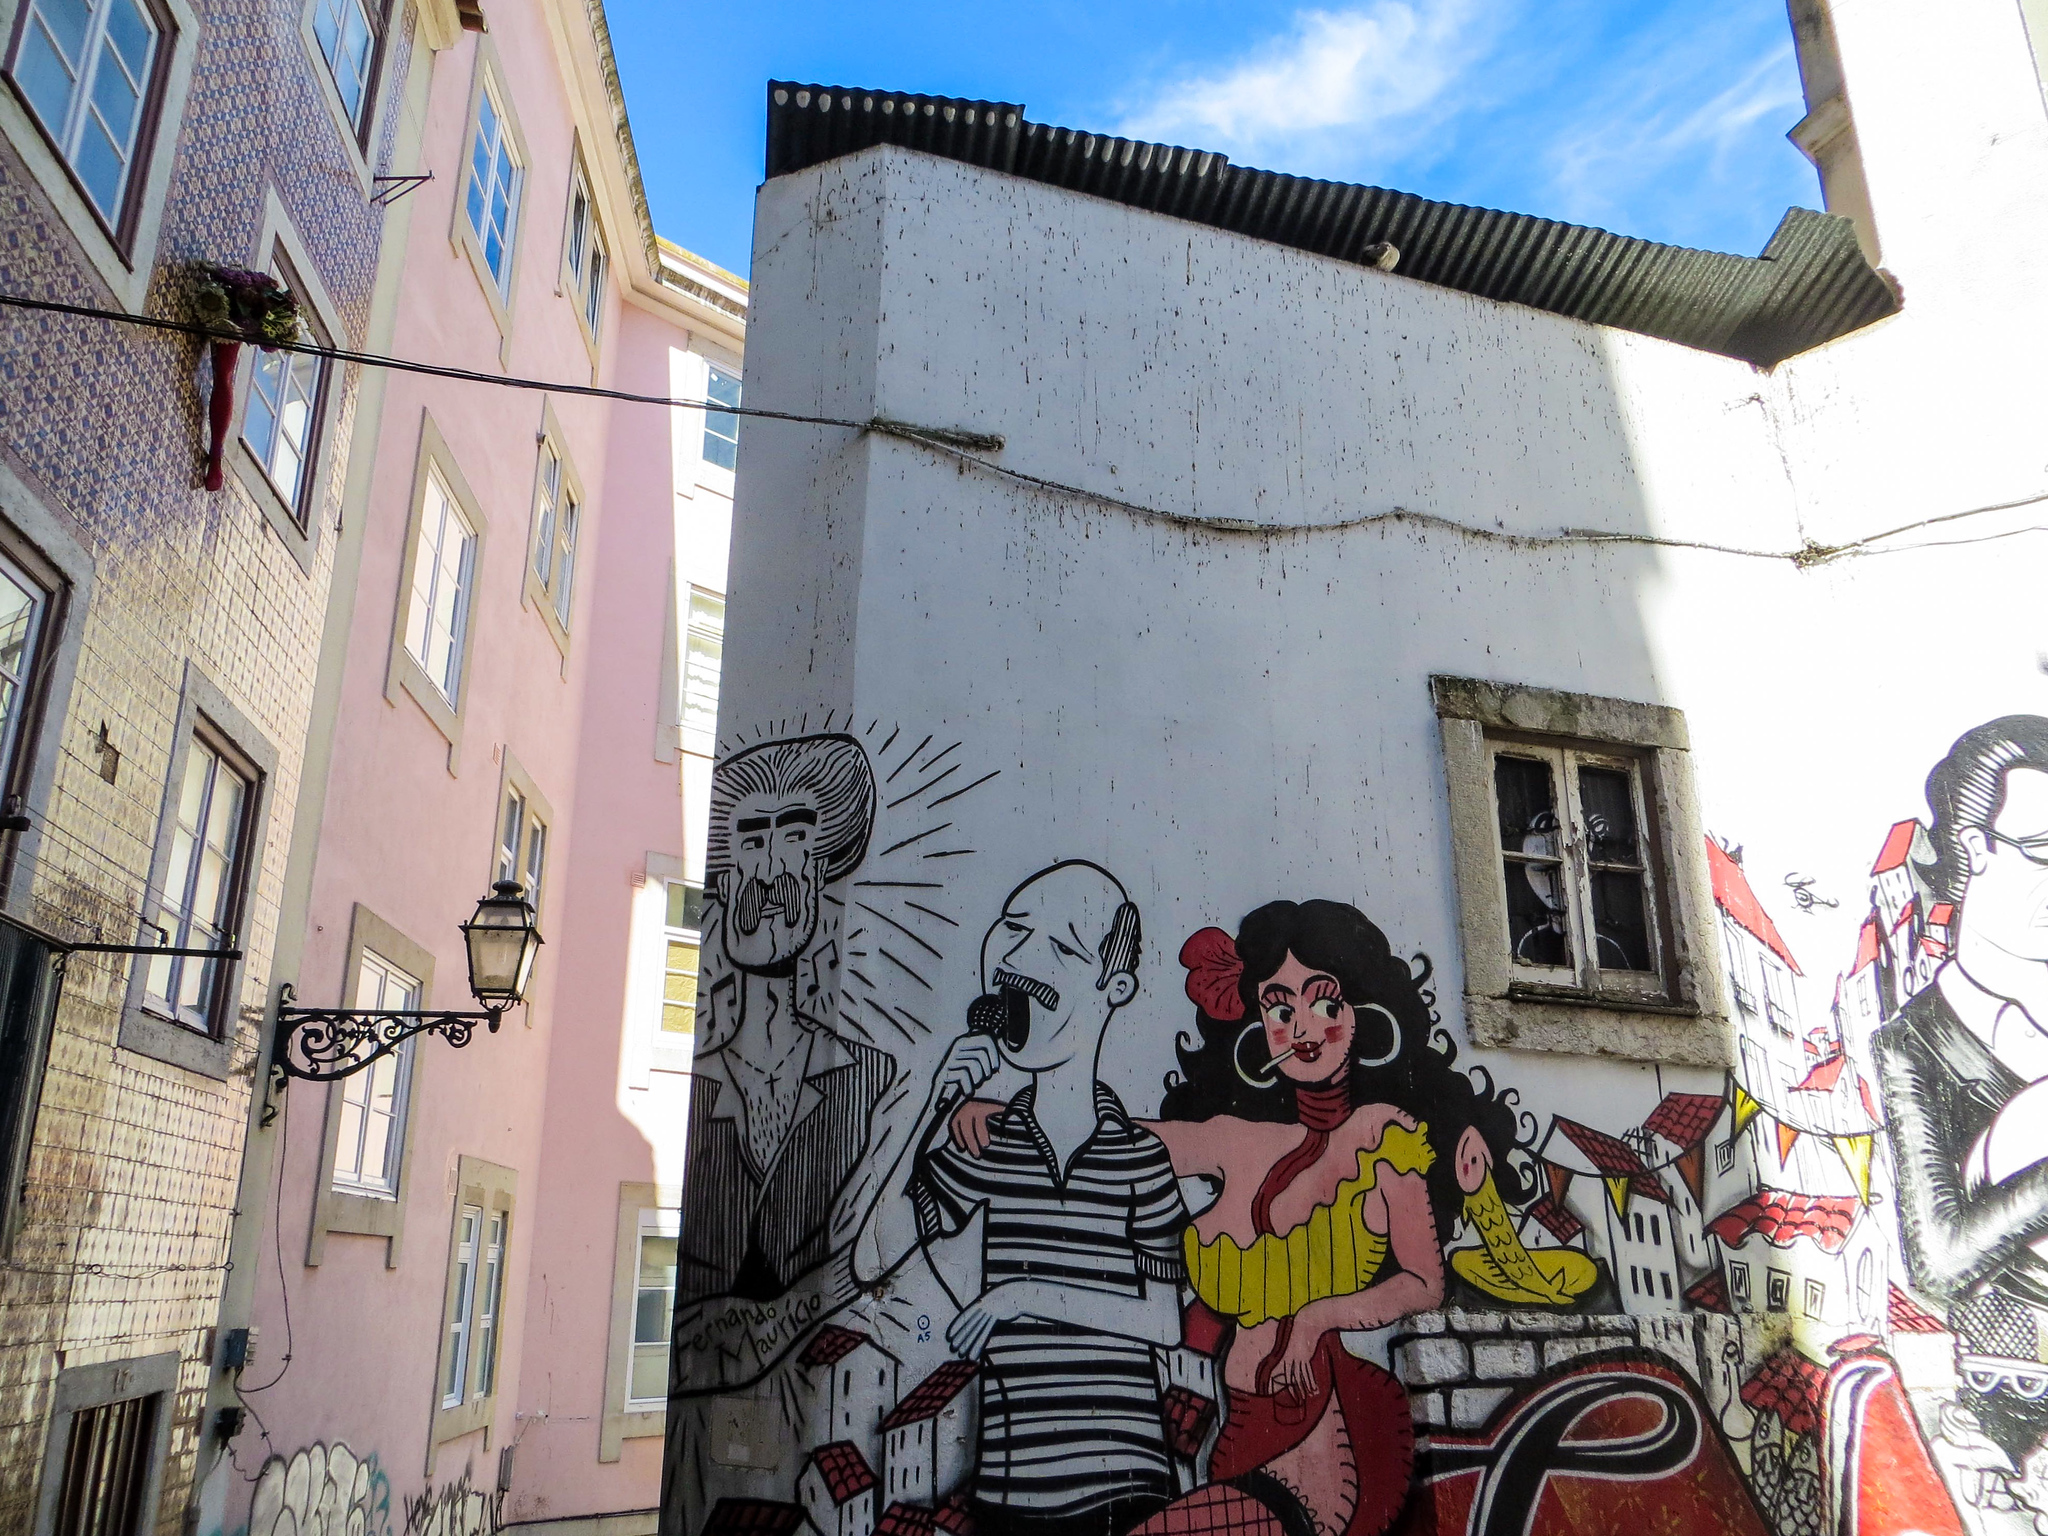 2 days in Lisbon: Make sure to see all of the street art